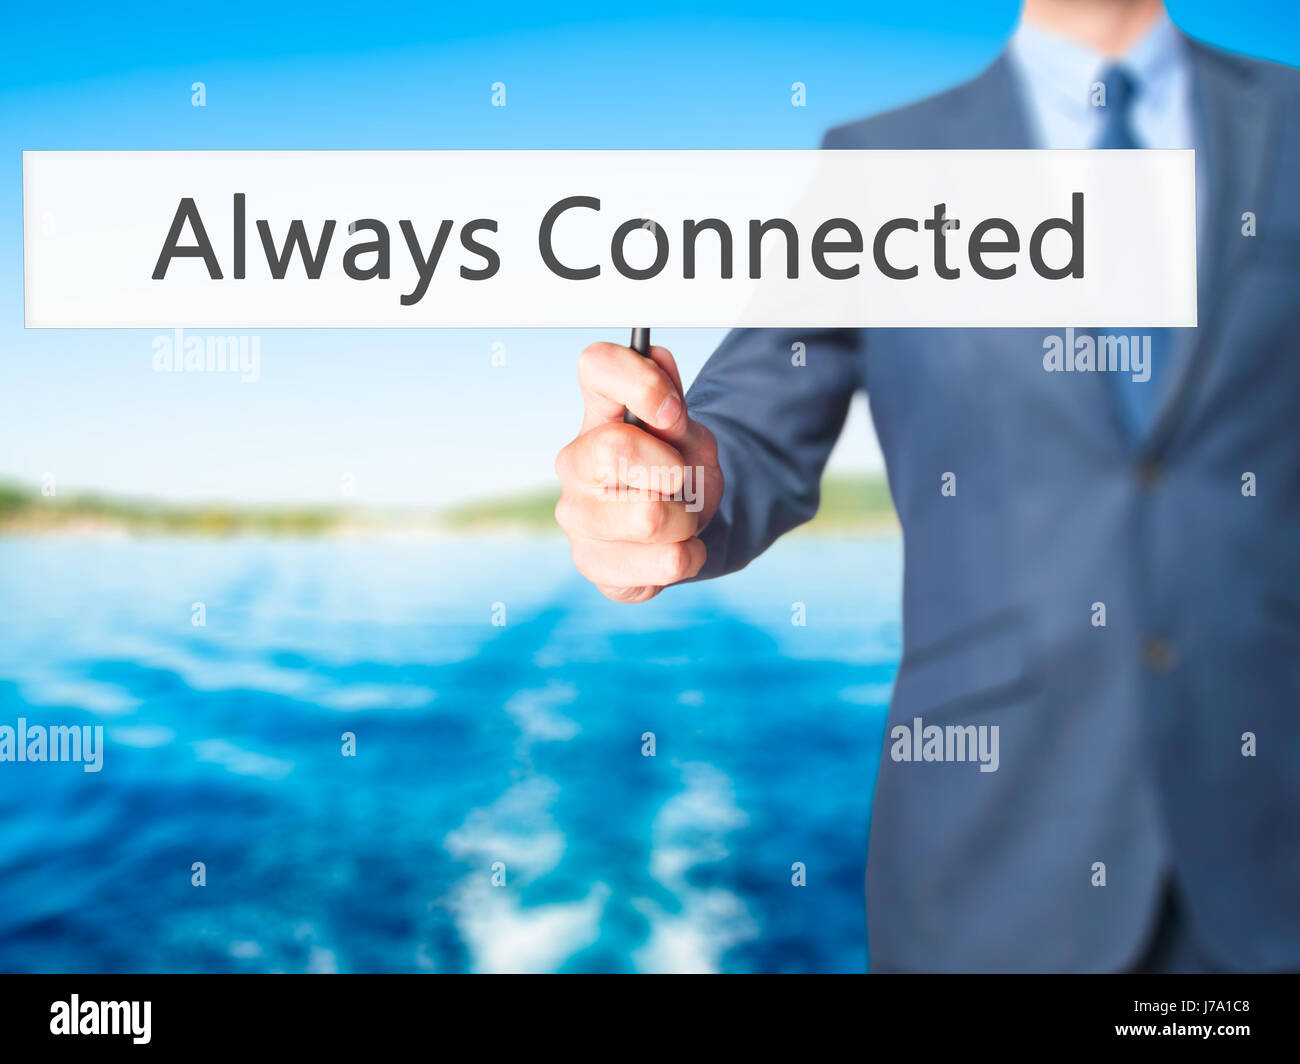 Always Connected - Businessman hand holding sign. Business, technology, internet concept. Stock Photo - Stock Image